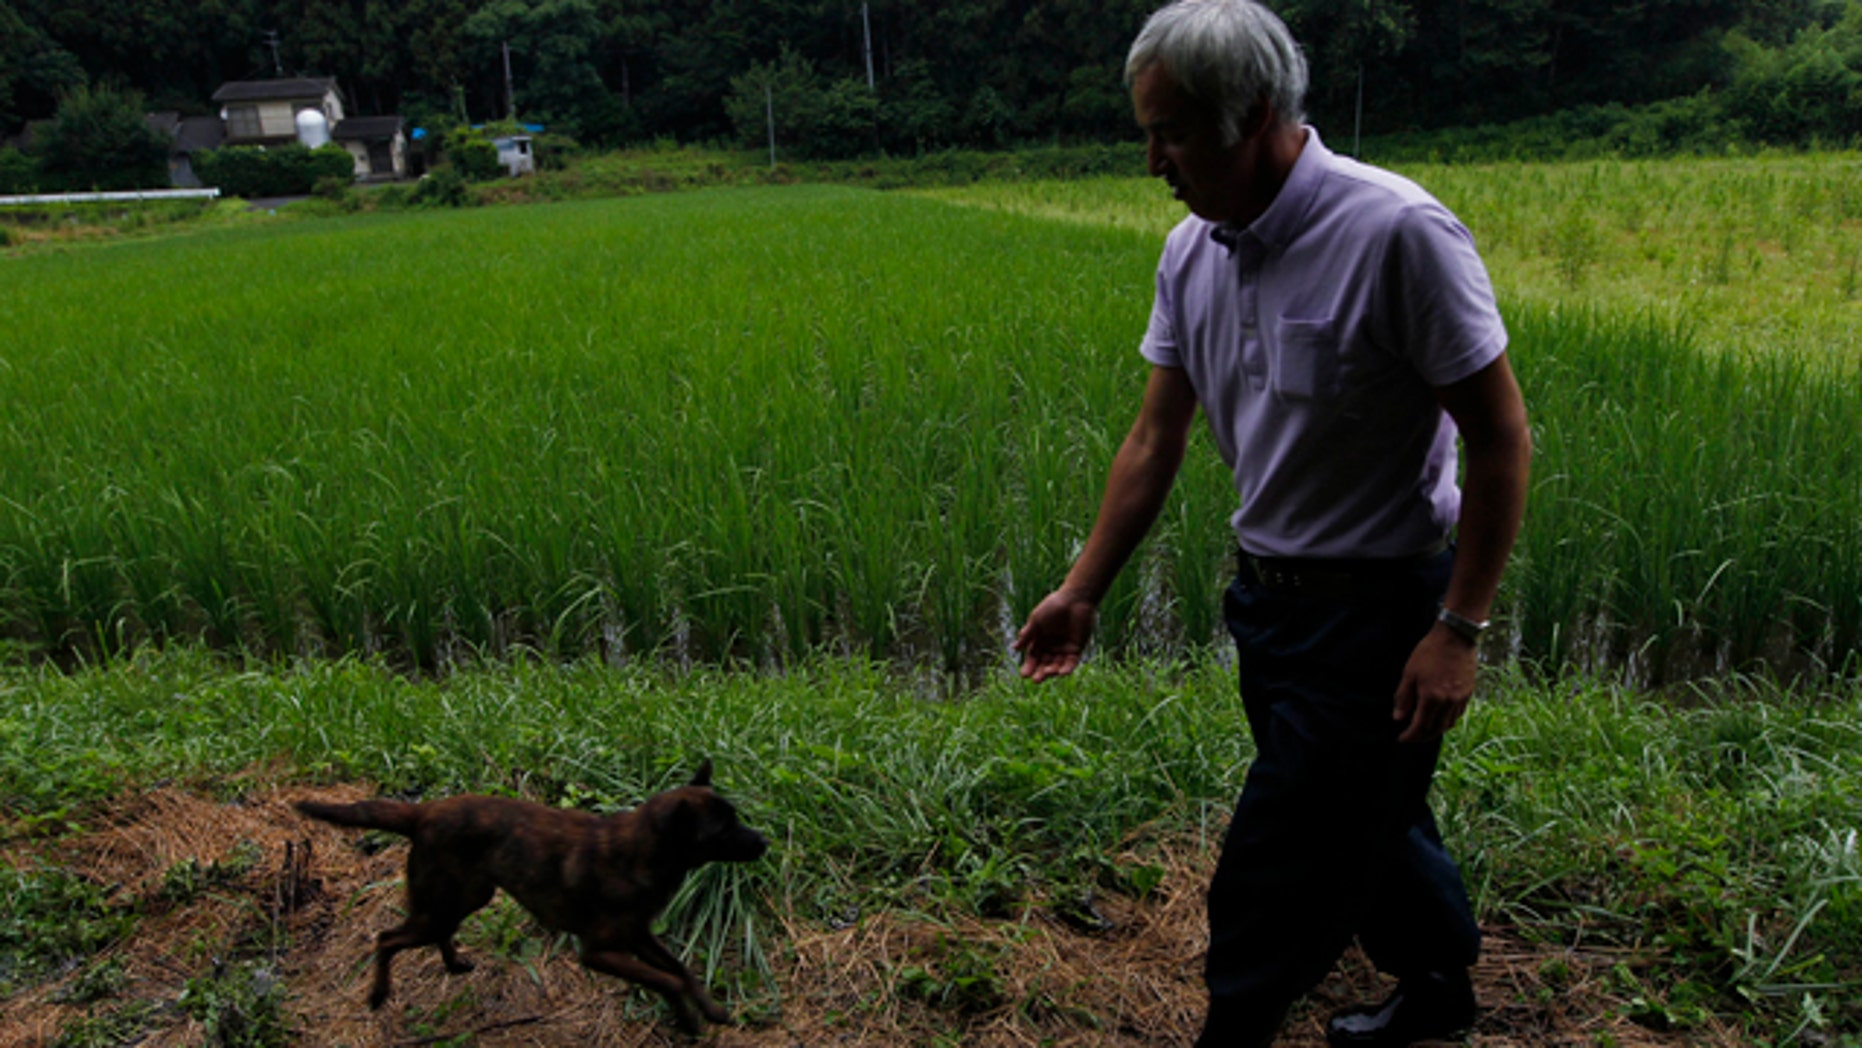 Aug. 19, 2011: Naoto Matsumura's dog Aki runs to meet him while he checks on his rice paddy in Tomioka town, Fukushima, northeastern Japan. Nearly six months after Japan's catastrophic earthquake and tsunami, the 53-year-old believes he is the only inhabitant left in this town sandwiched between the doomed Fukushima Dai-ichi nuclear power station to the north and another sprawling nuclear plant to the south.